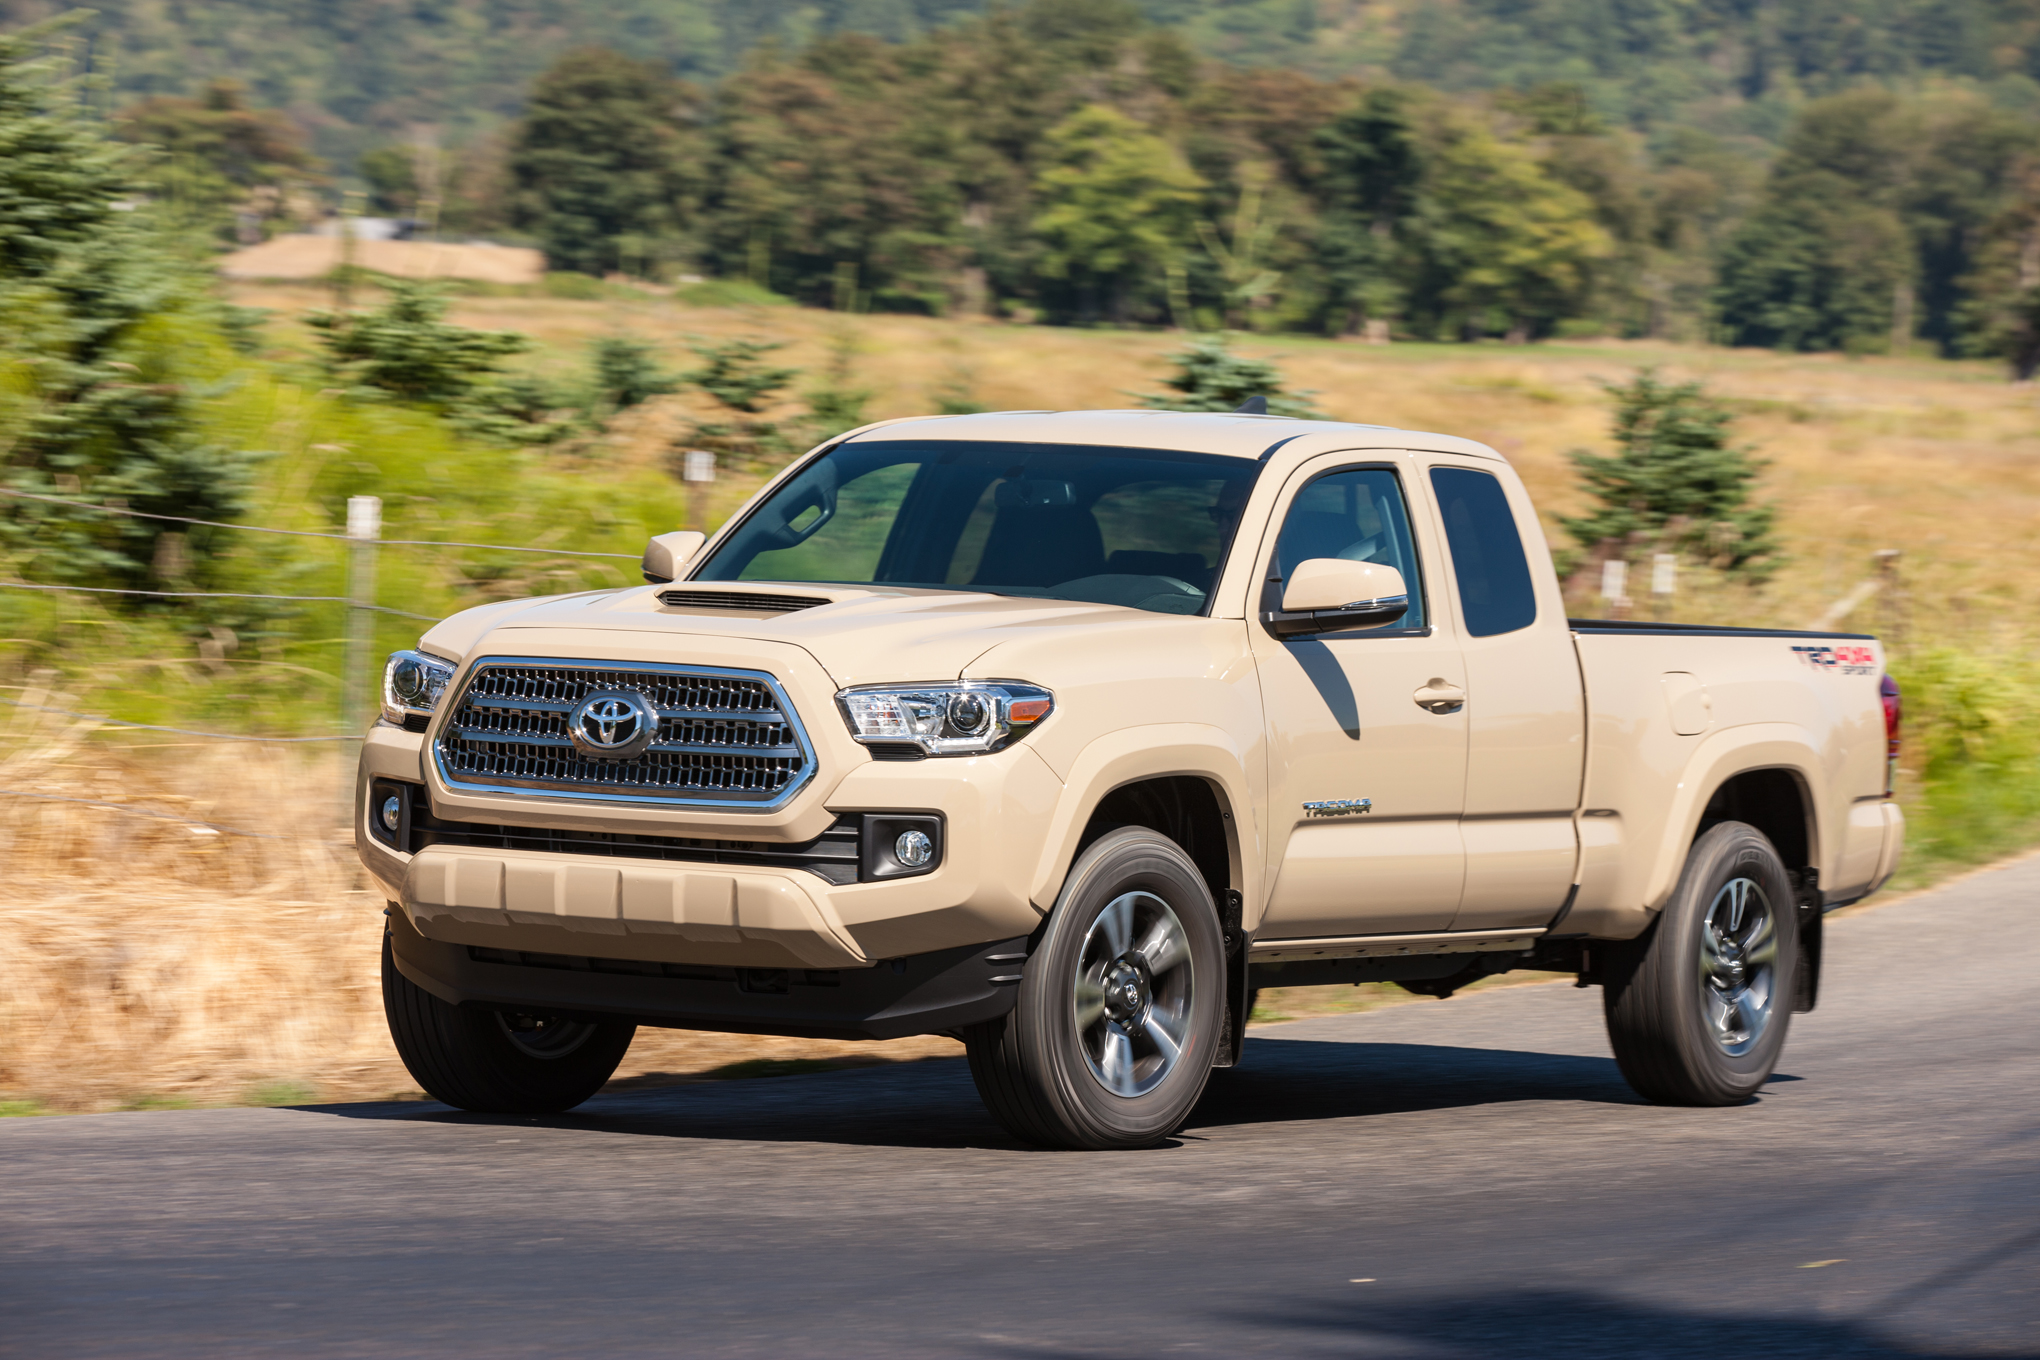 2017 Tacoma Trd Sport Price >> 2016 Toyota Tacoma Price Jumps to $24,200 - Motortrend